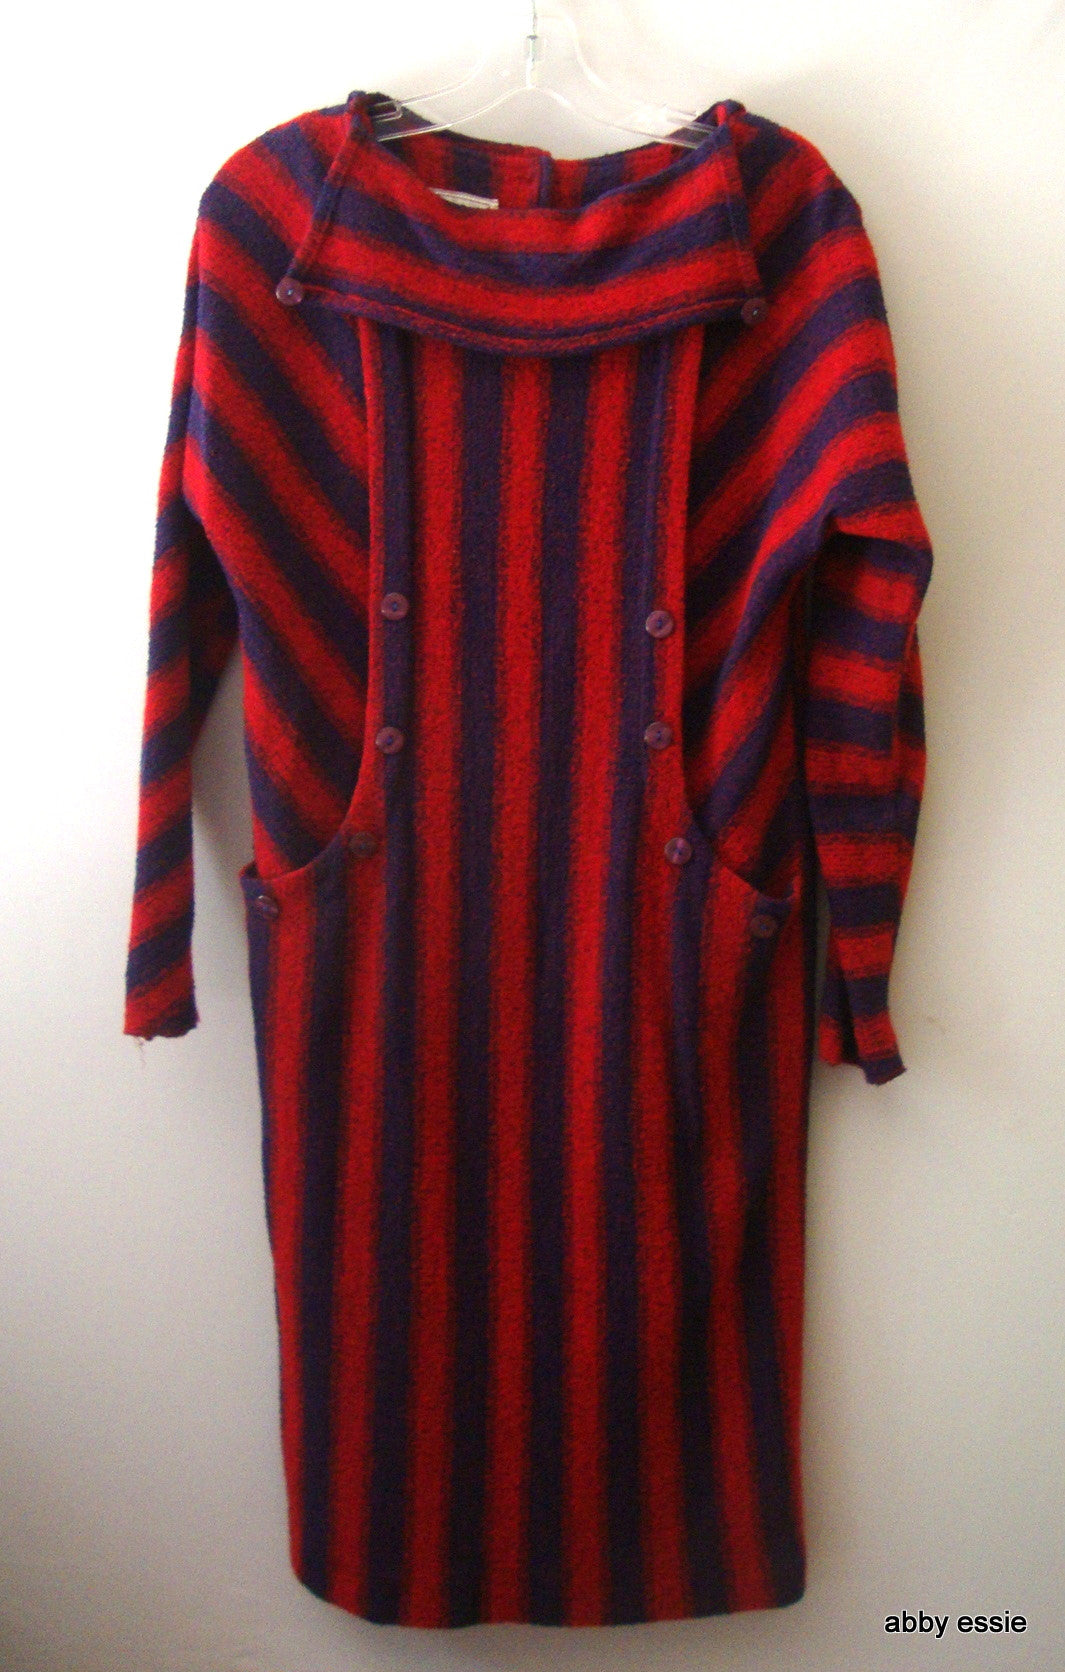 RARE Antique Vintage BEAUTE RED BLUE STRIPED WOOL KNIT PEASANT FESTIVAL DRESS  7 SMALL